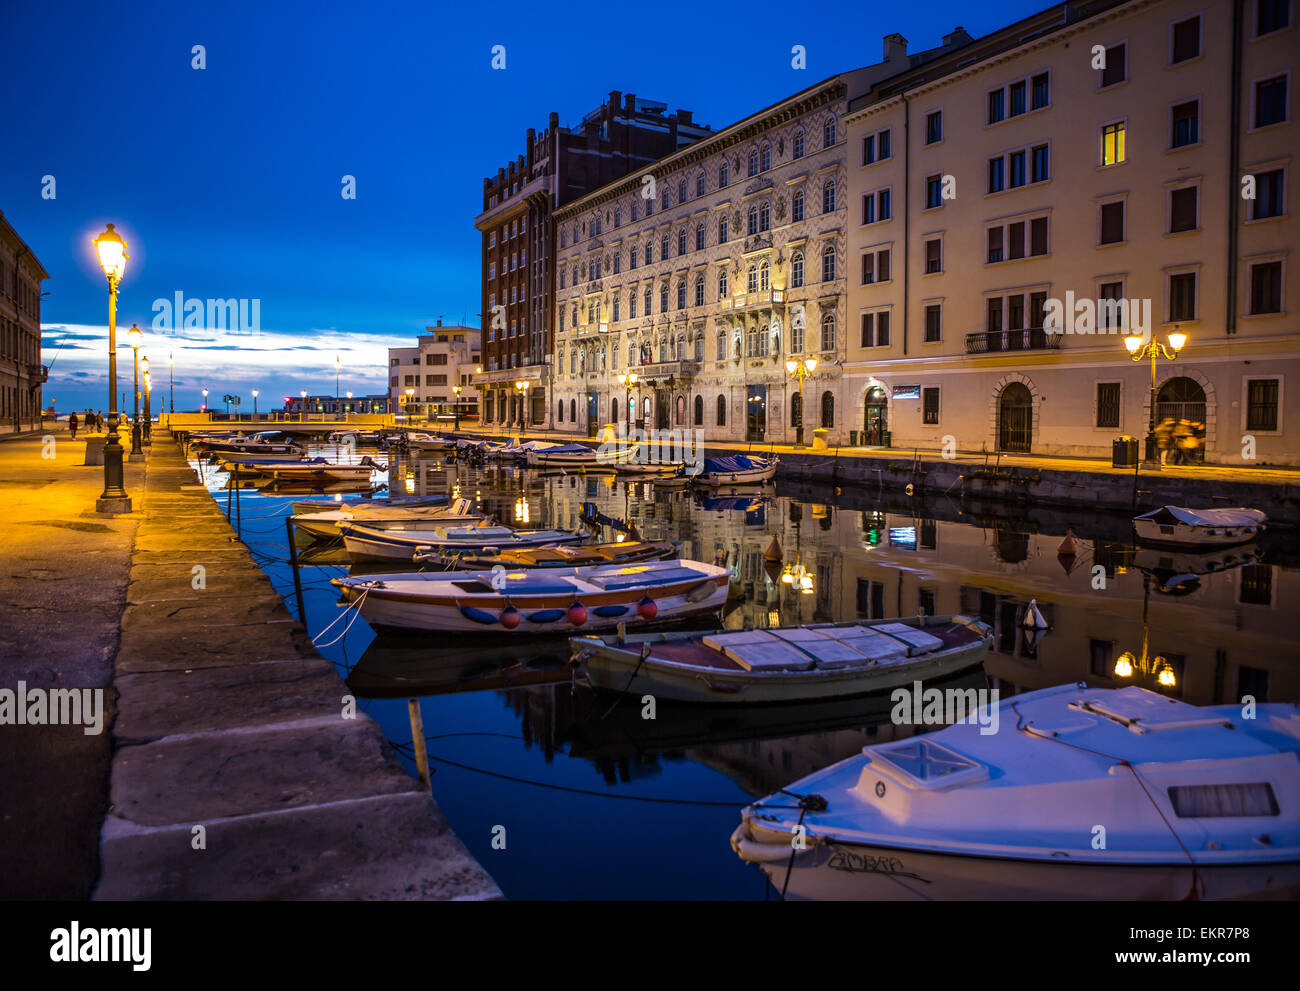 The so-called 'Grande Canale' at dusk in Trieste, a city in the northeast of Italy on the Adriatic Sea. - Stock Image